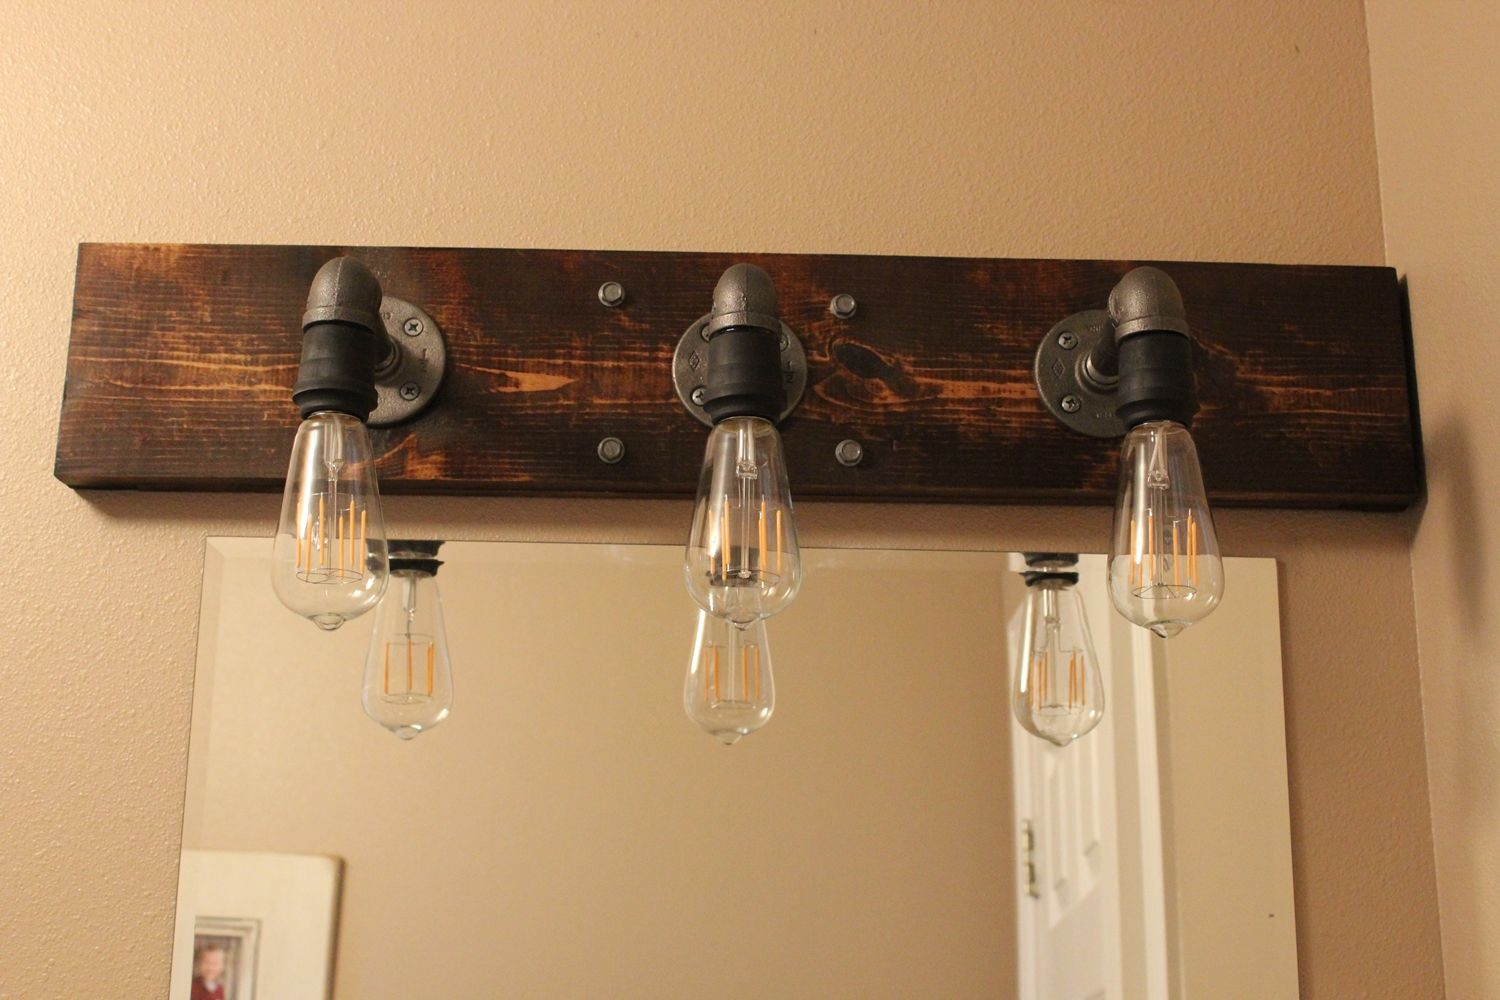 Diy industrial bathroom light fixtures for Over mirror bathroom lights